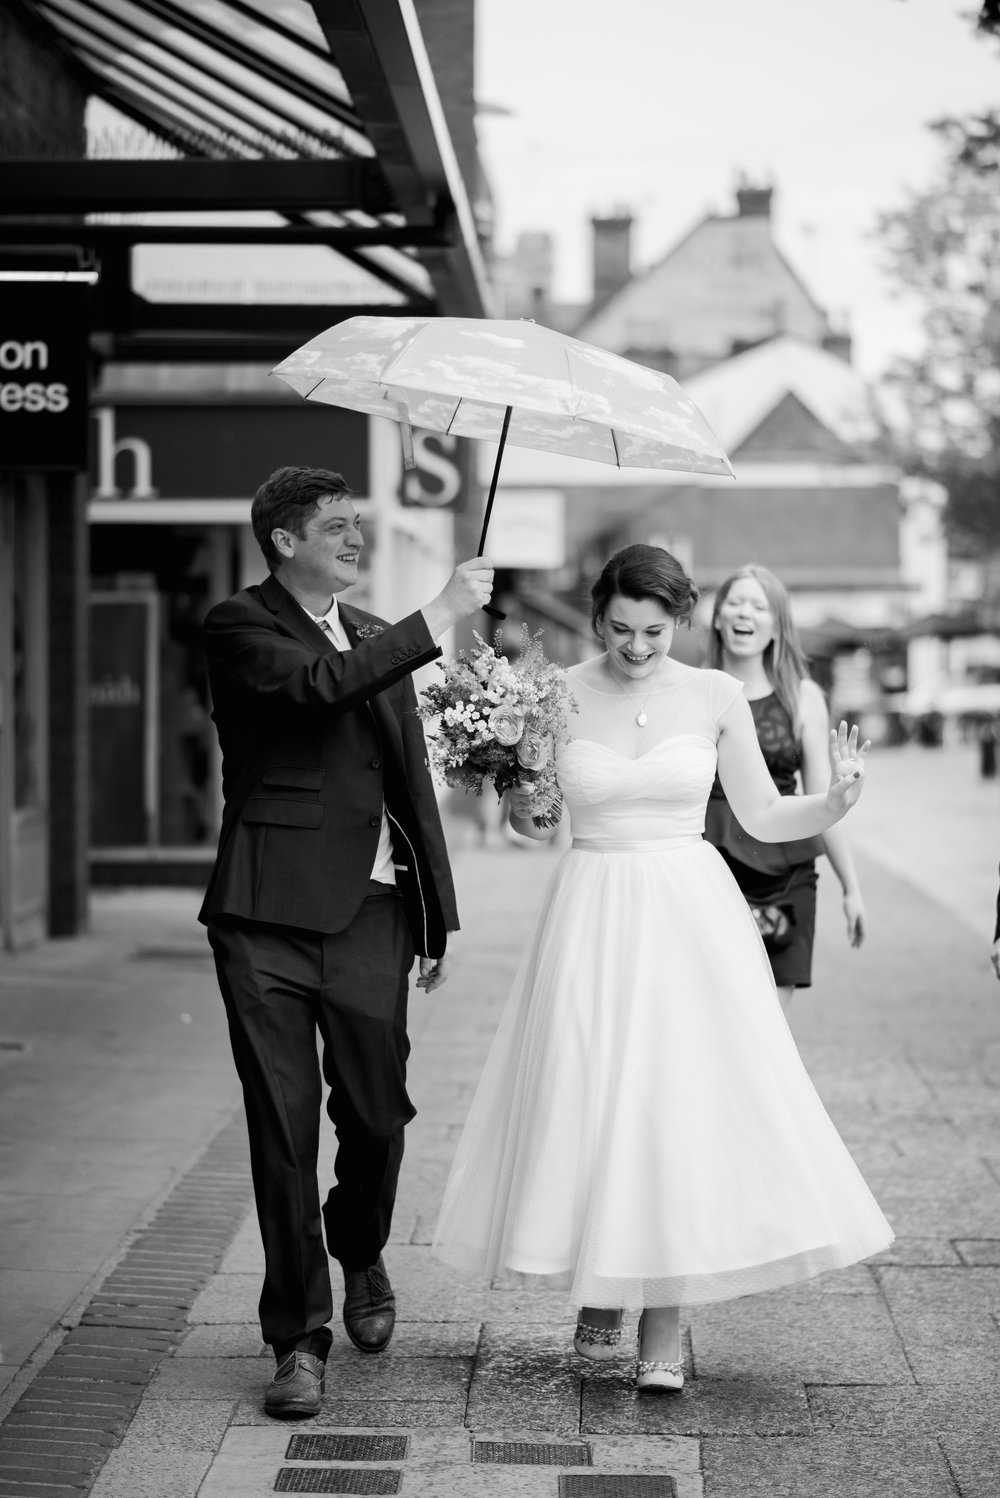 154 Emily + Daniel | Berkhamsted Towhall Wedding London Wedding Photographer Bride Groom Watford.jpg